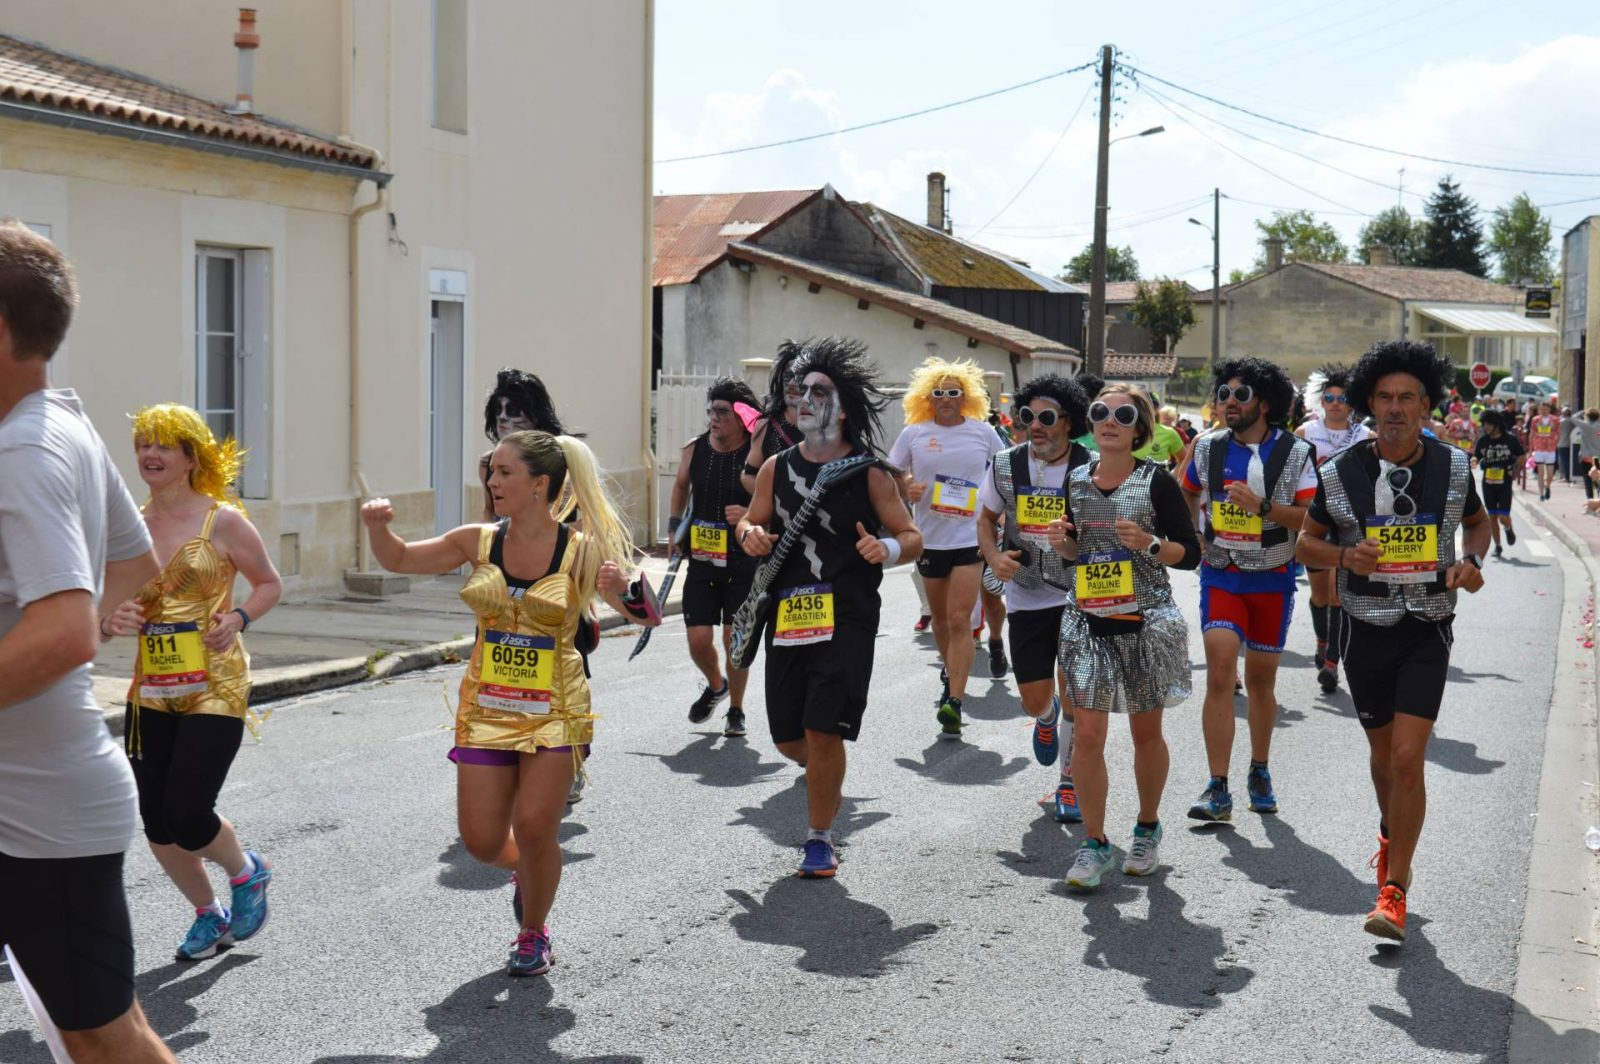 Running the Marathon du Medoc wine station